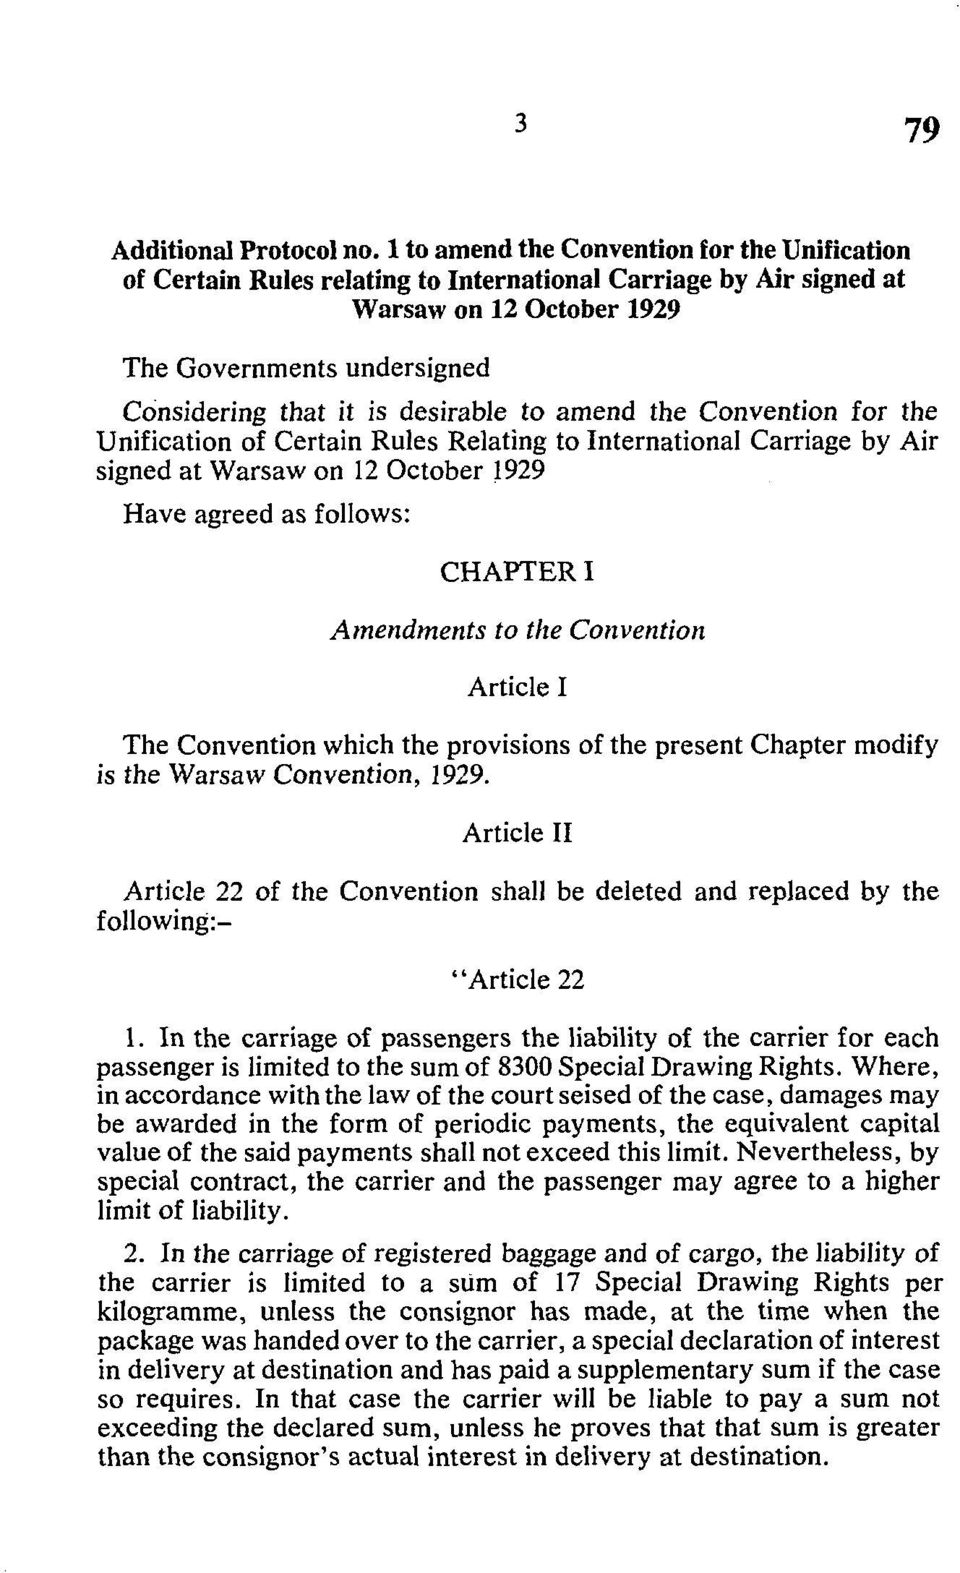 desirable to amend the Convention for the Unification of Certain Rules Relating to International Carriage by Air signed at Warsaw on 12 October 1929 Have agreed as follows: CHAPTER I Amendments to